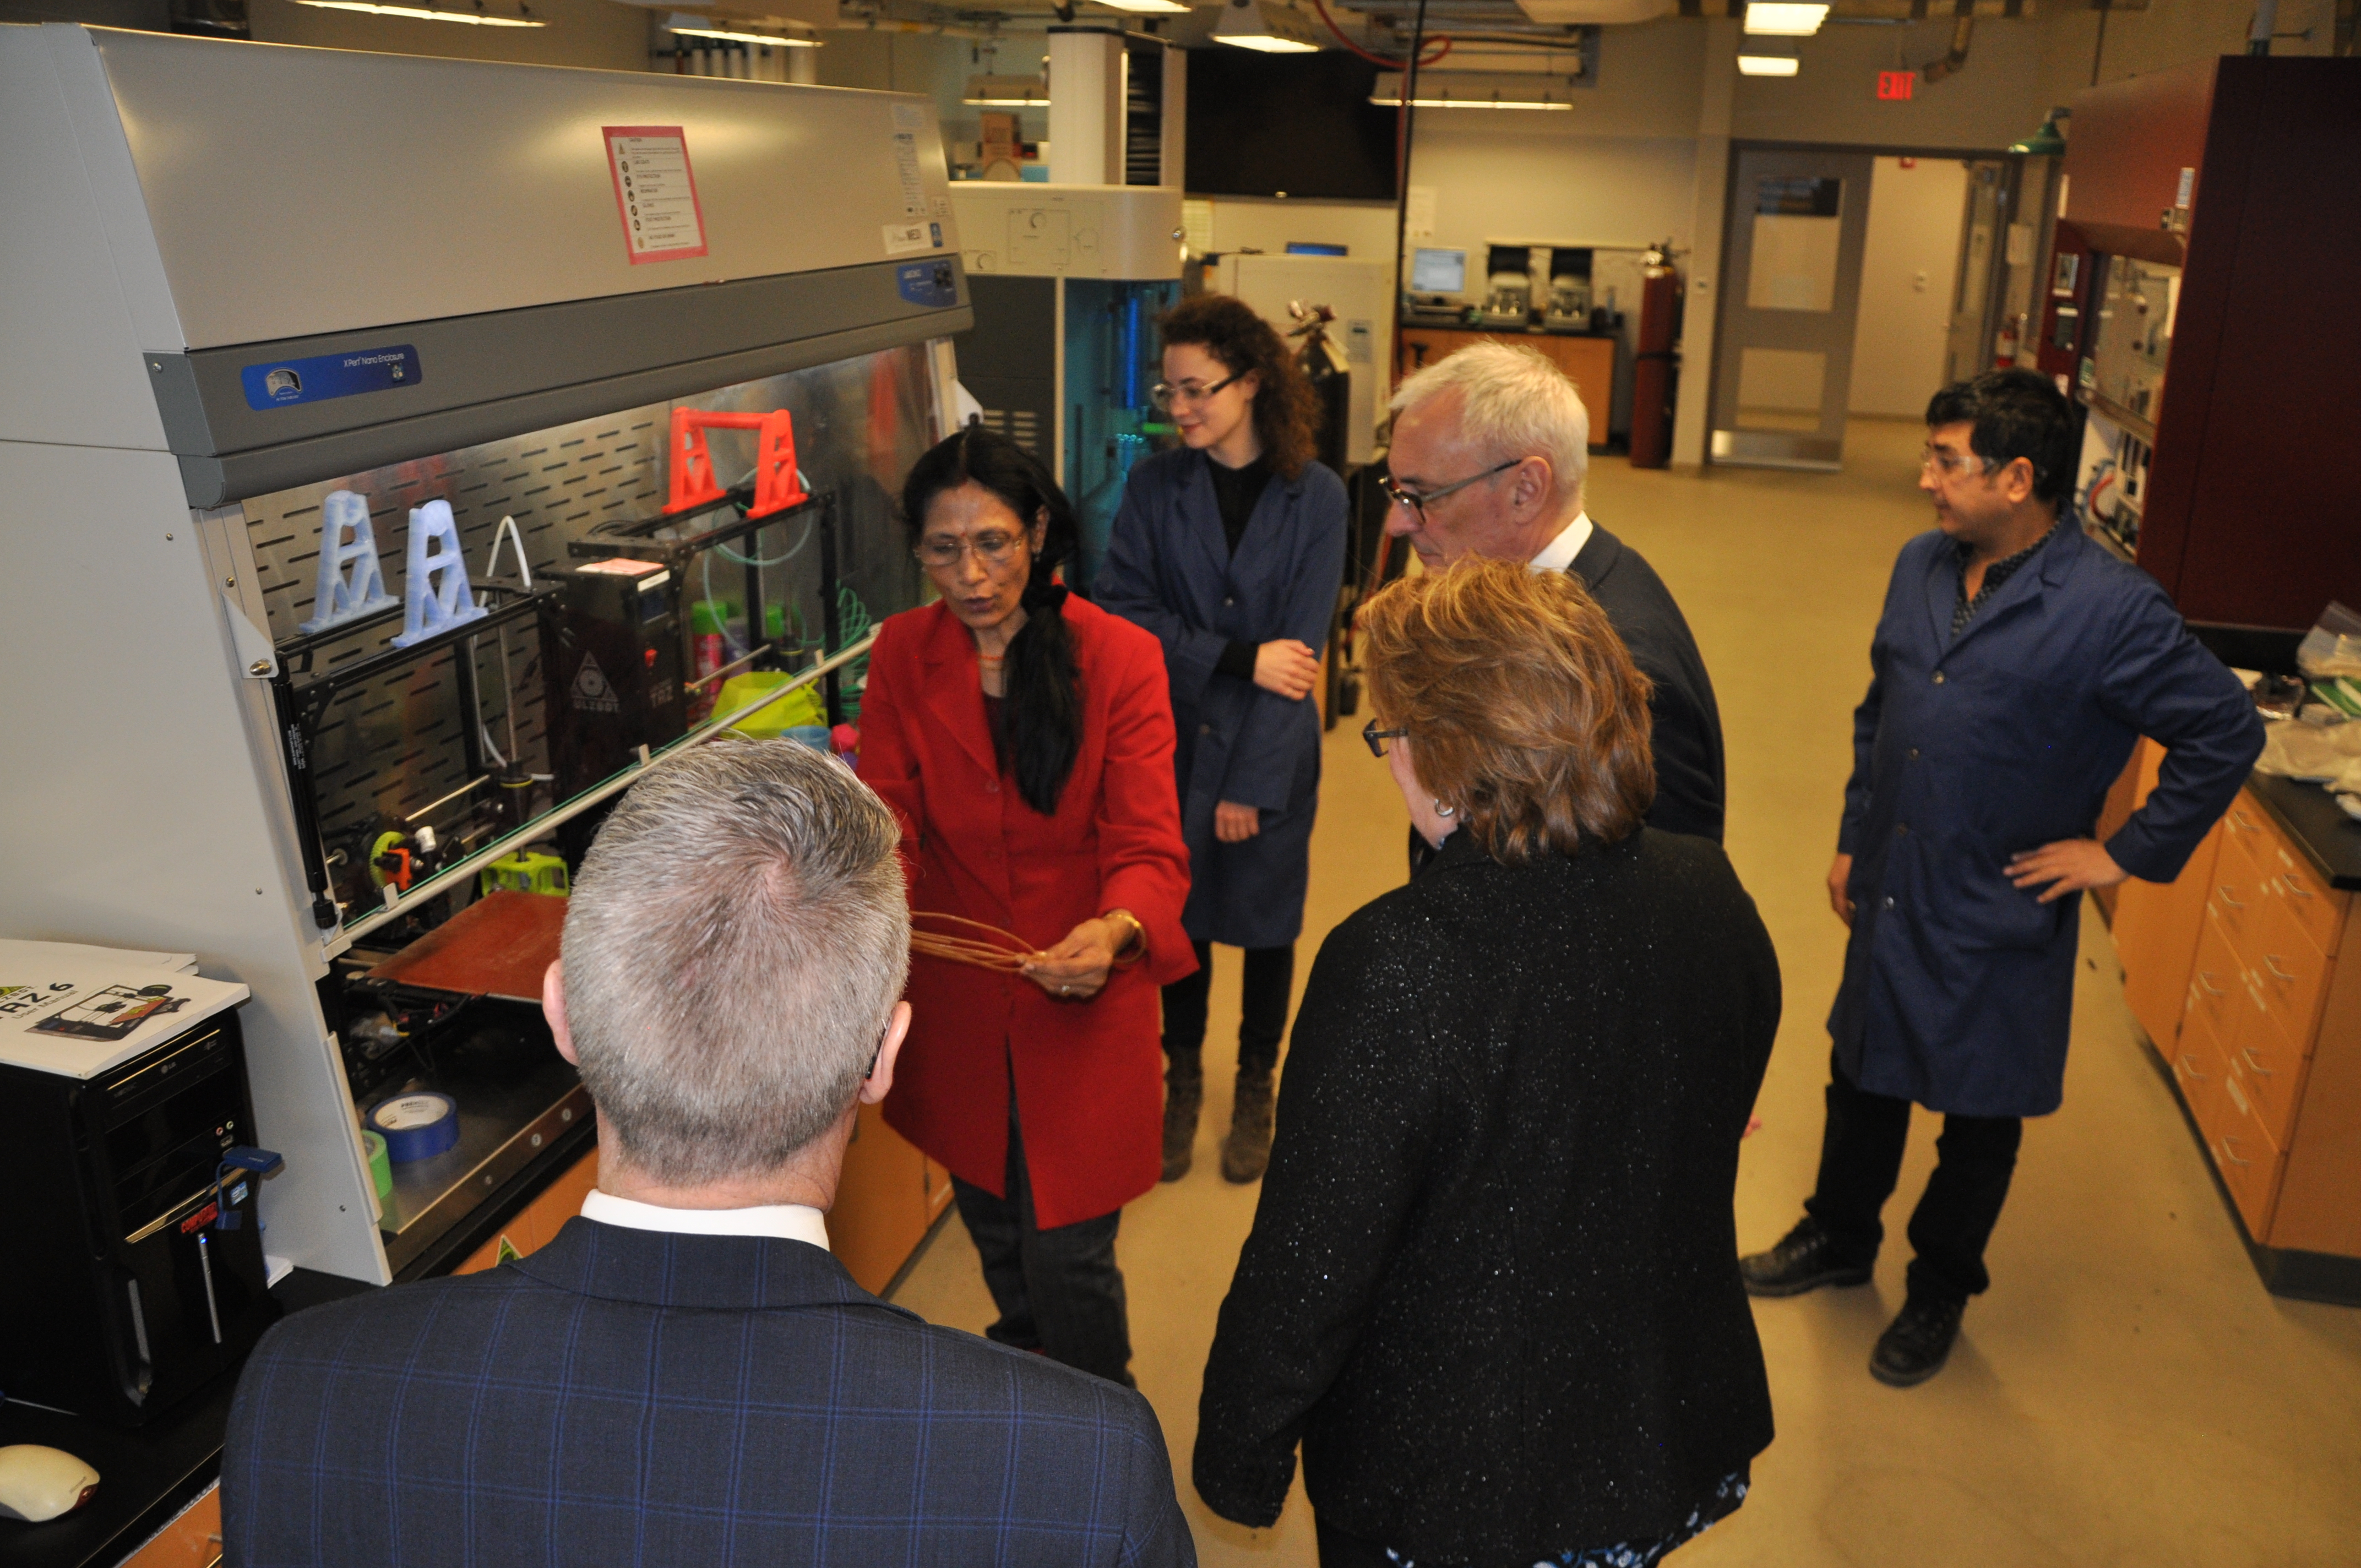 Dr. Misra doing a tour of the BDDC facility